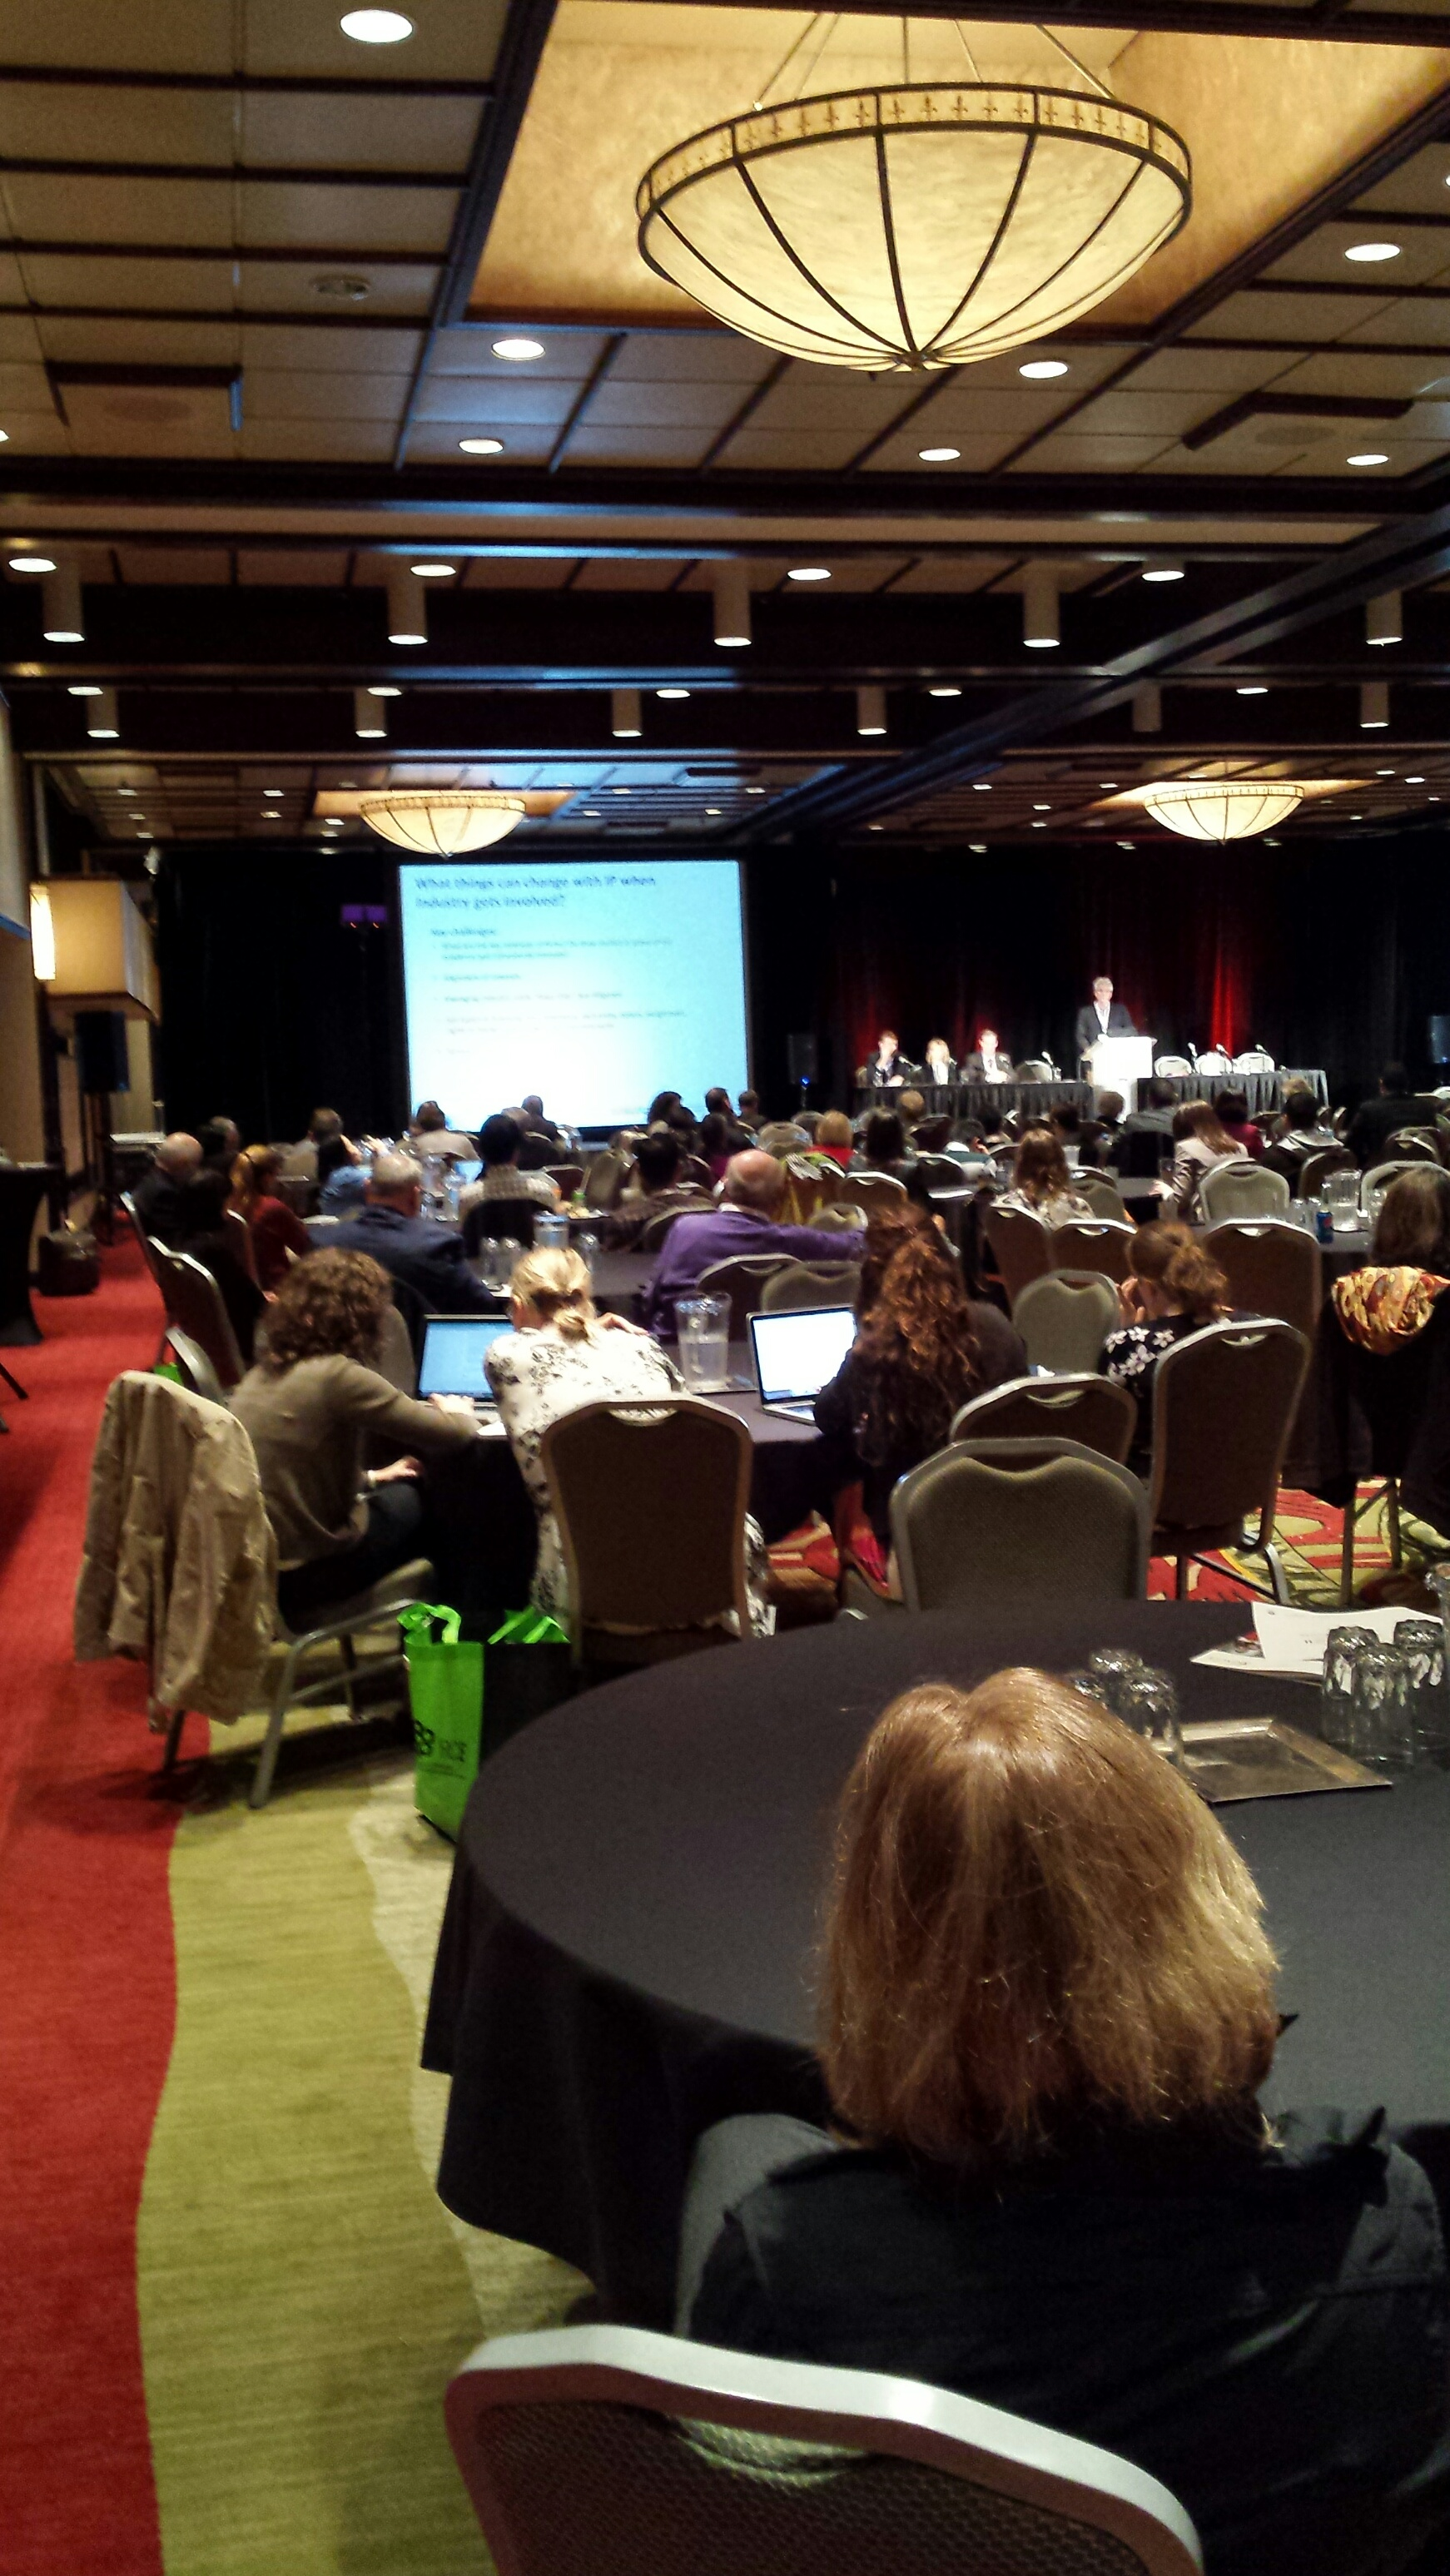 Last day of the conference - the room is filled with innovators, caregivers, researchers.